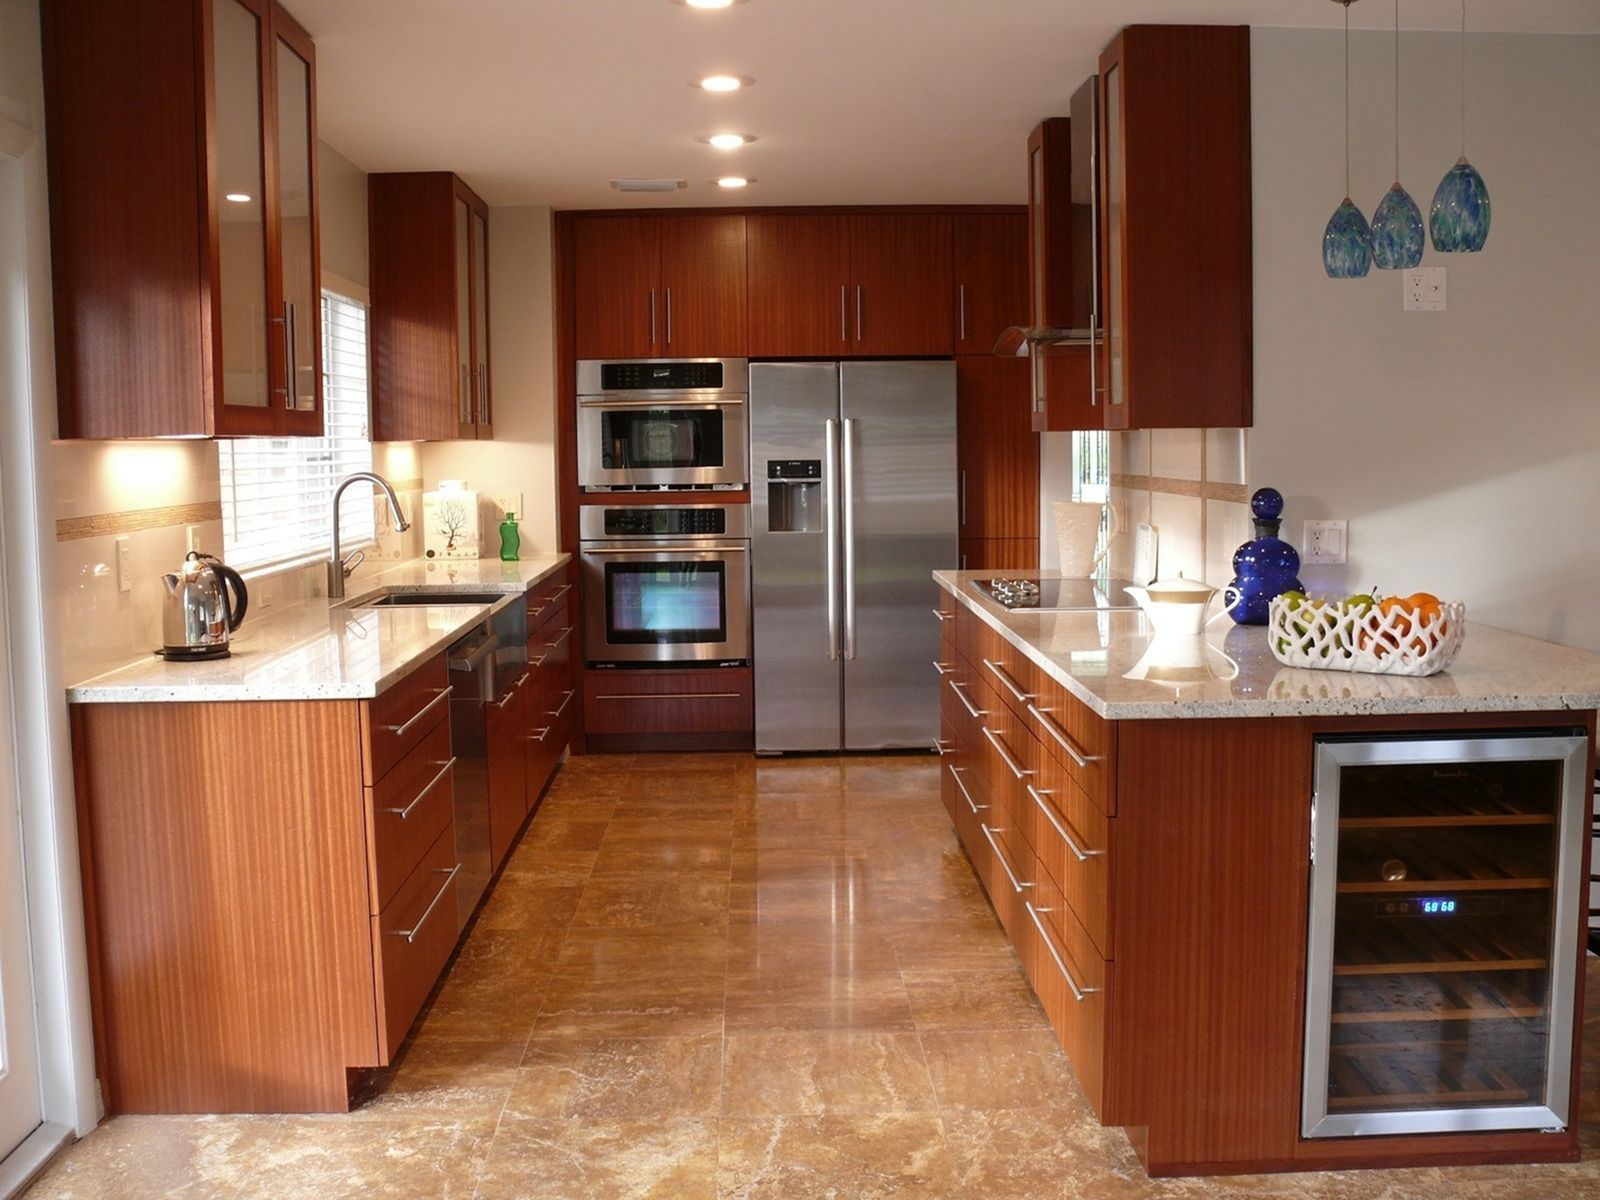 15 Amazing Wooden Cabinet Designs That Fit Your Needs Mahogany Kitchen Mahogany Cabinets Used Kitchen Cabinets